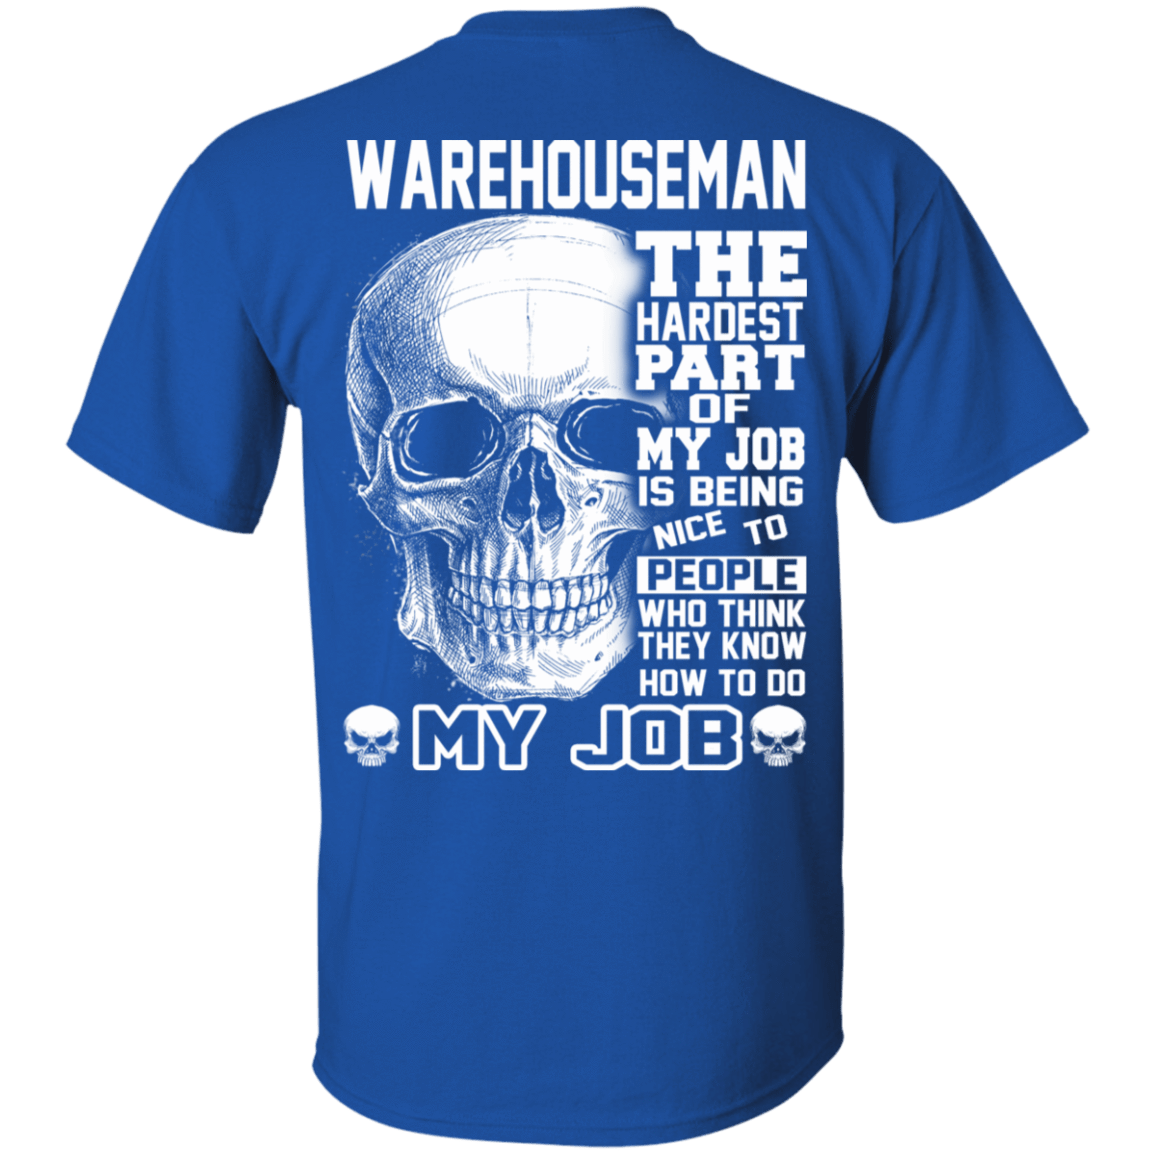 Warehouseman The Hardest Part Of My Job 22-110-71609195-249 - Tee Ript